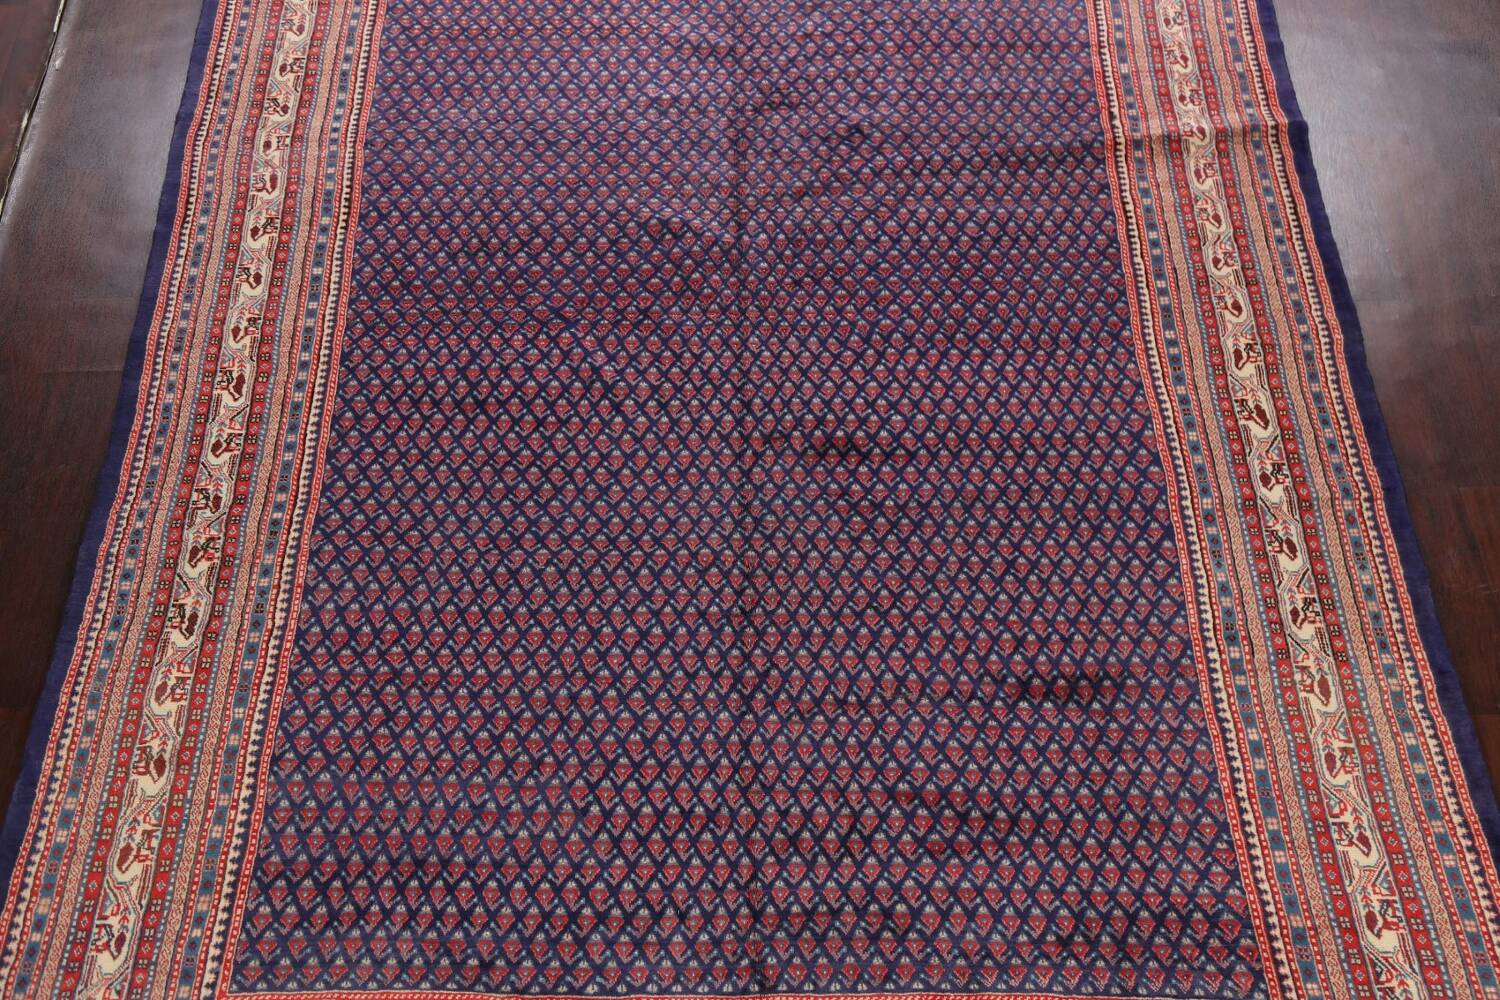 All-Over Boteh Botemir Persian Area Rug 9x12 image 3